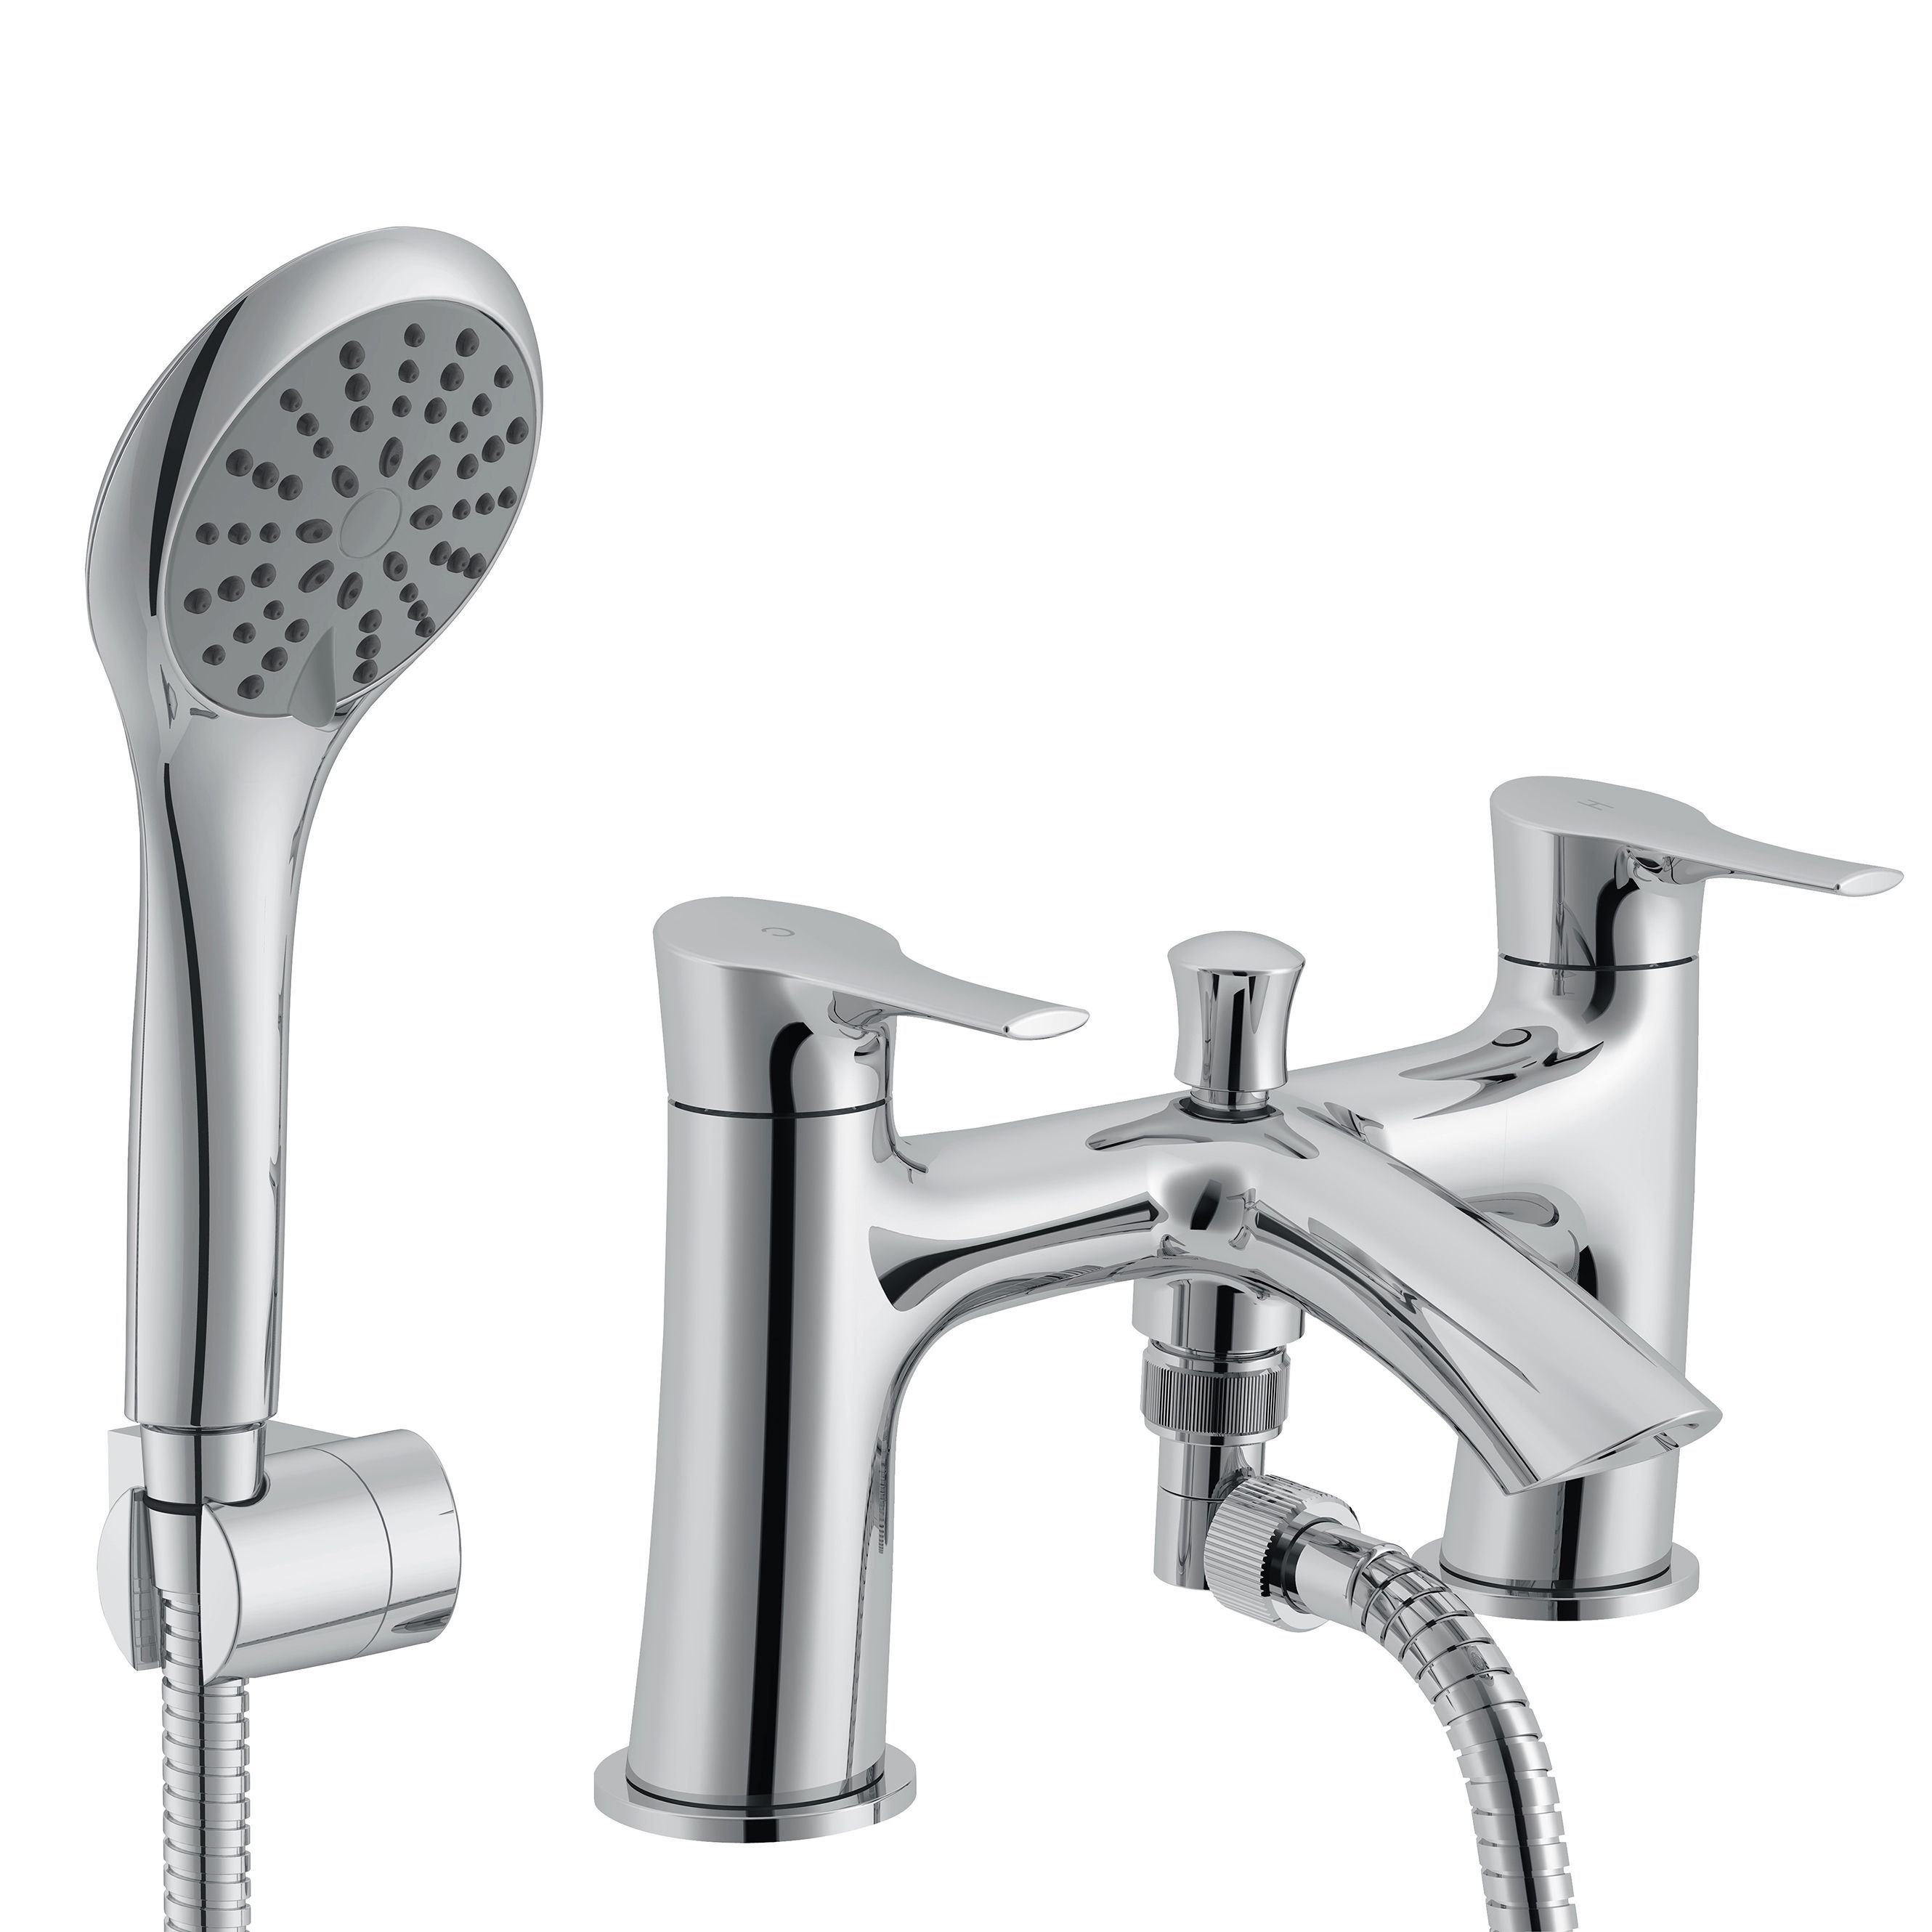 cooke lewis oceanspray chrome bath shower mixer tap cooke lewis oceanspray chrome bath shower mixer tap departments diy at b q